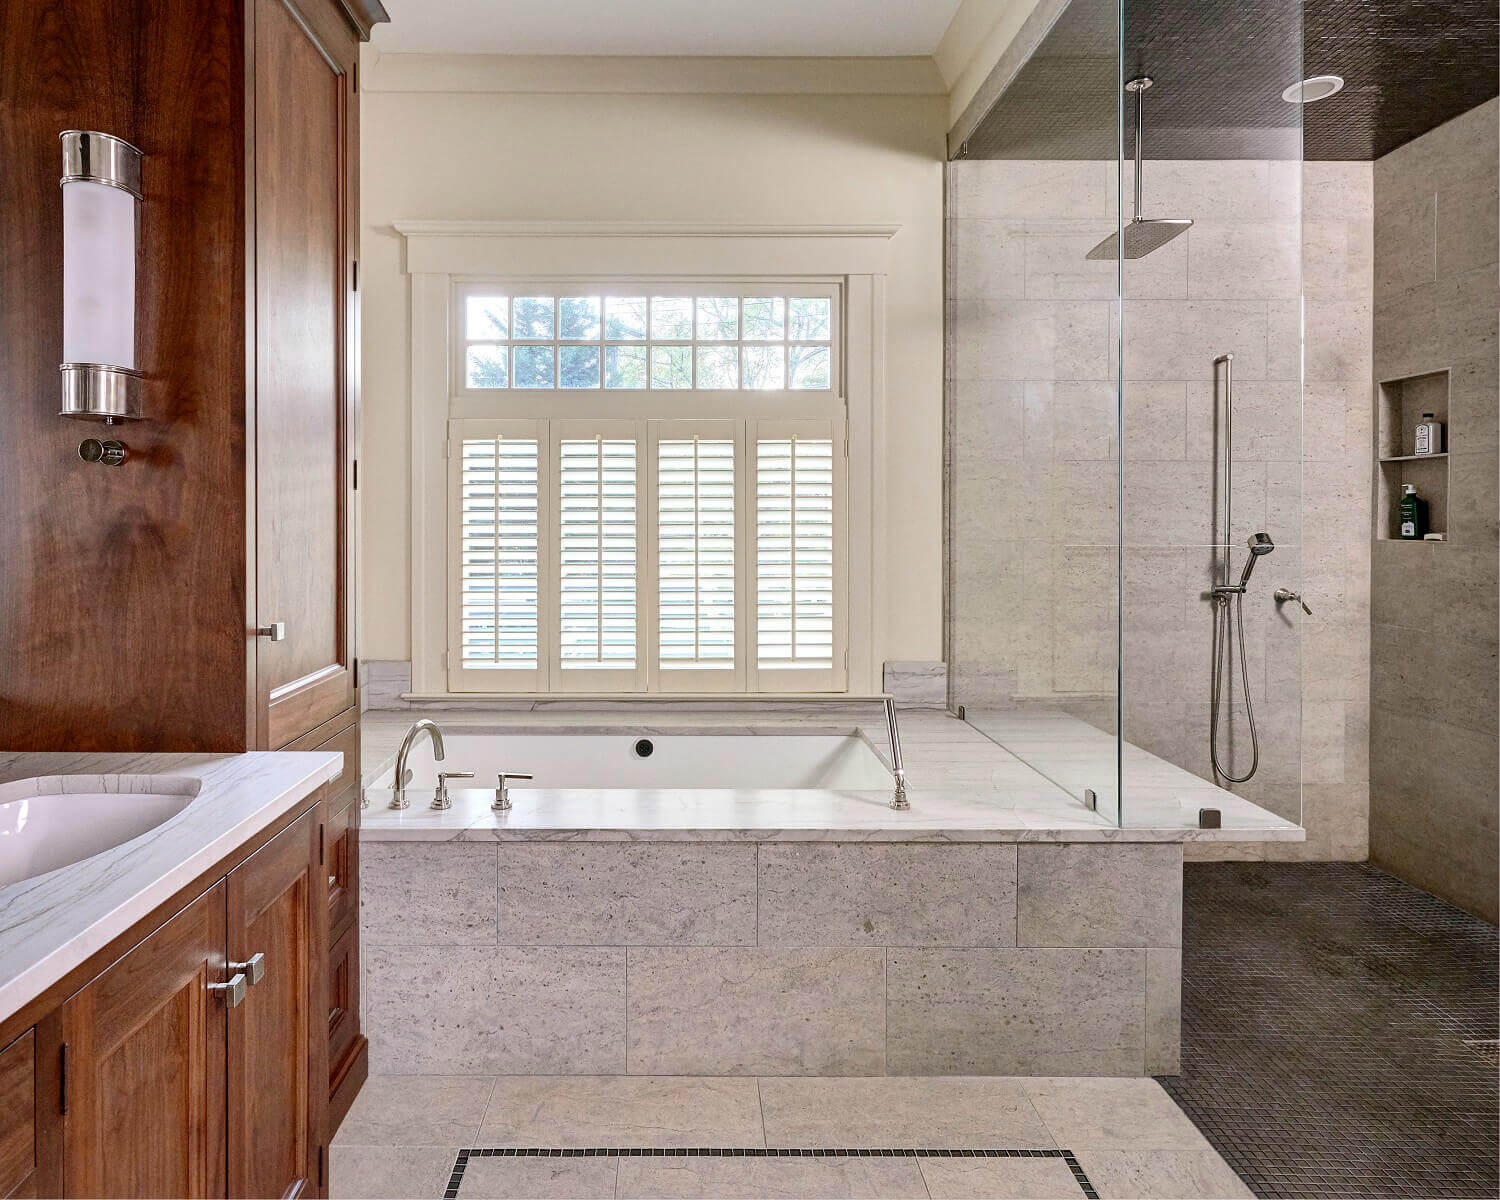 A Bathroom Remodel With Space To Sit And Relax